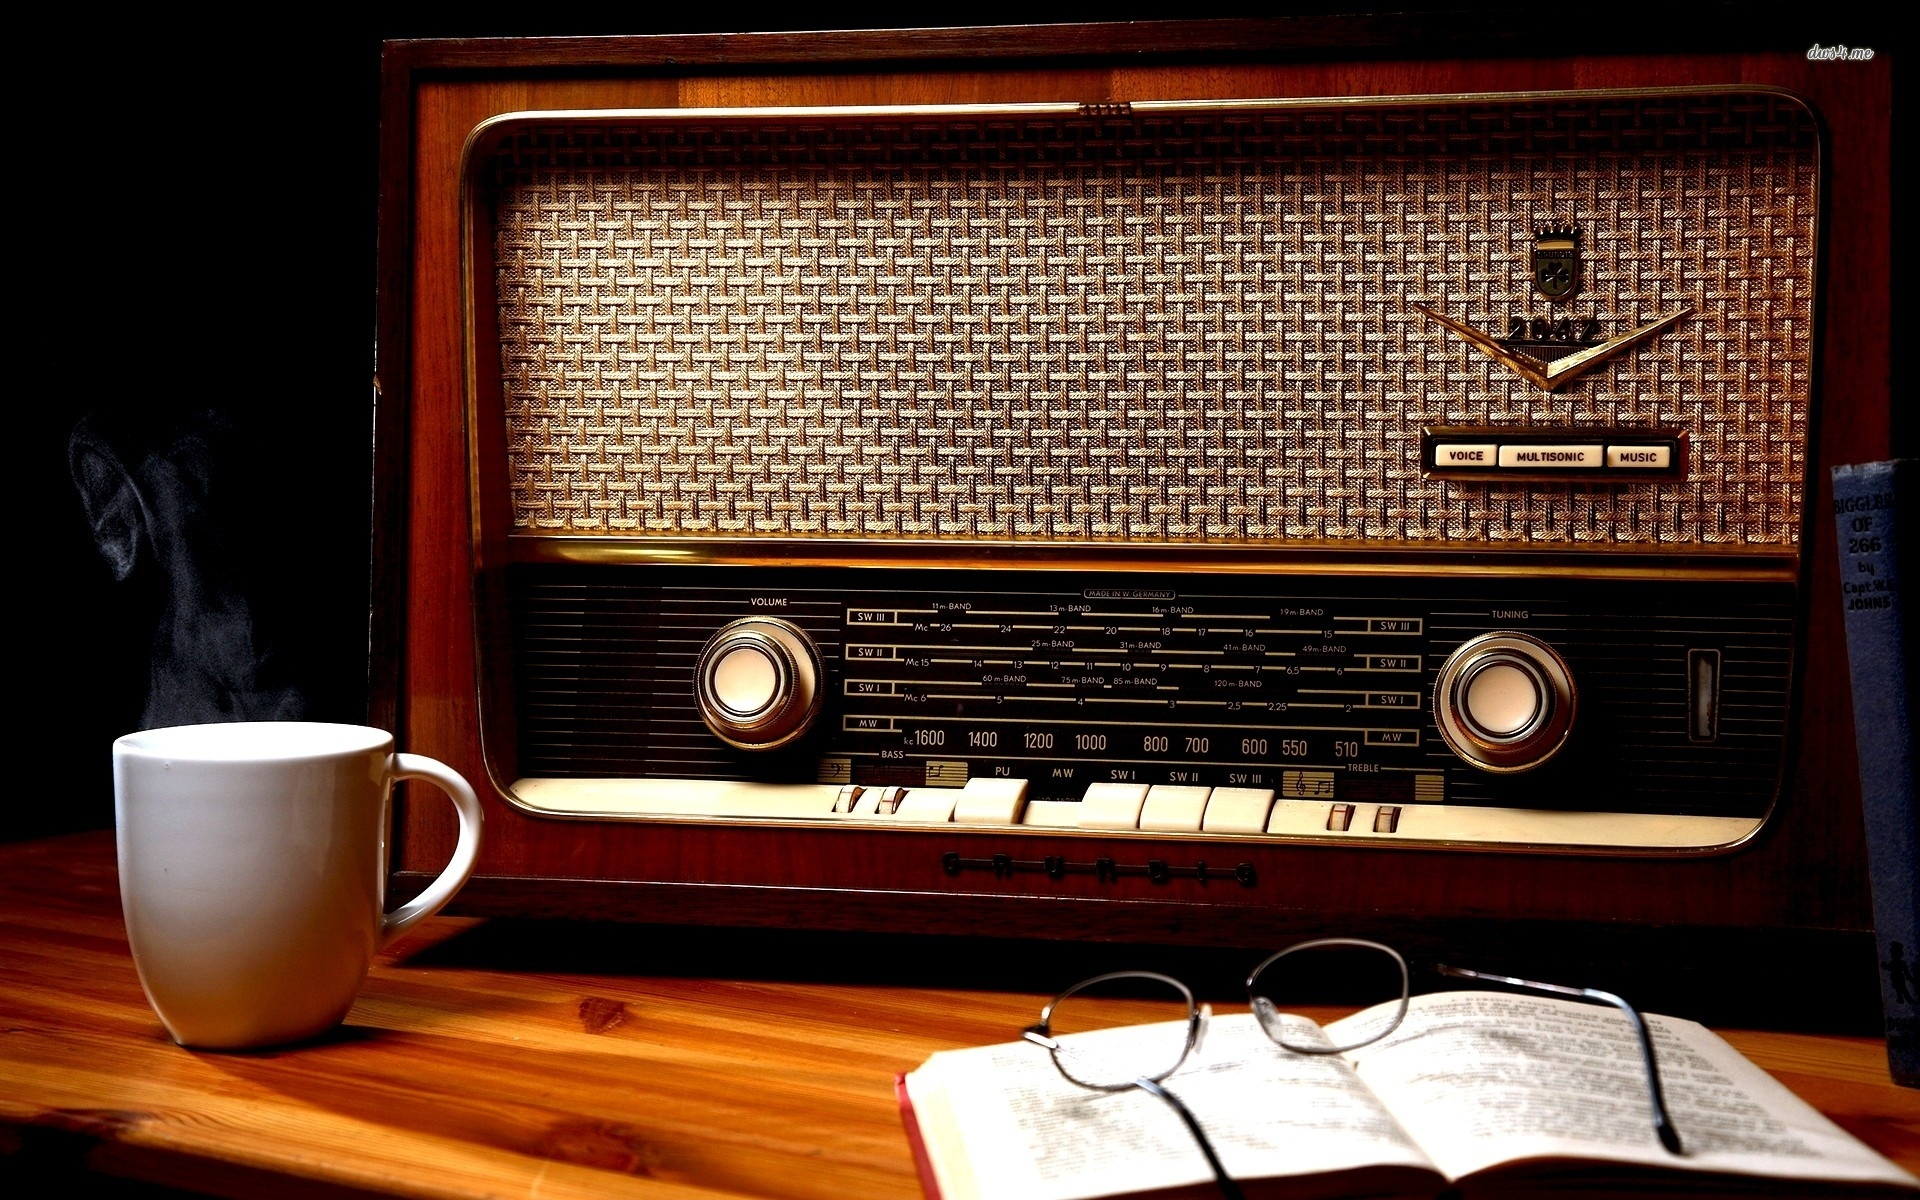 Wide HDQ Radio Wallpapers, Cool Photos | BsnSCB